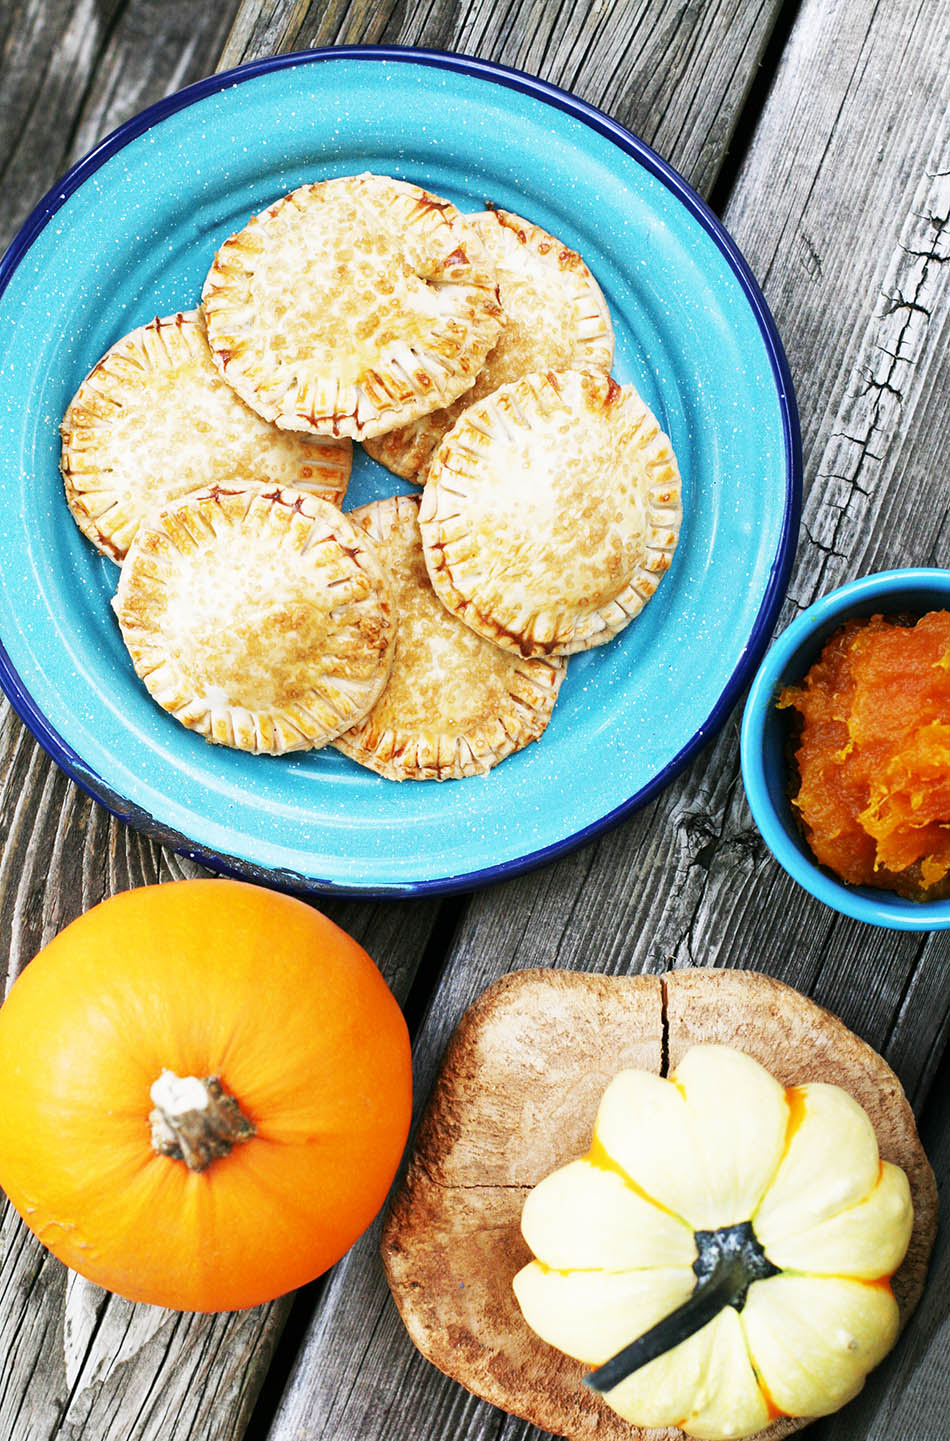 Pumpkin hand pies: These small pies are portable and easy to make!